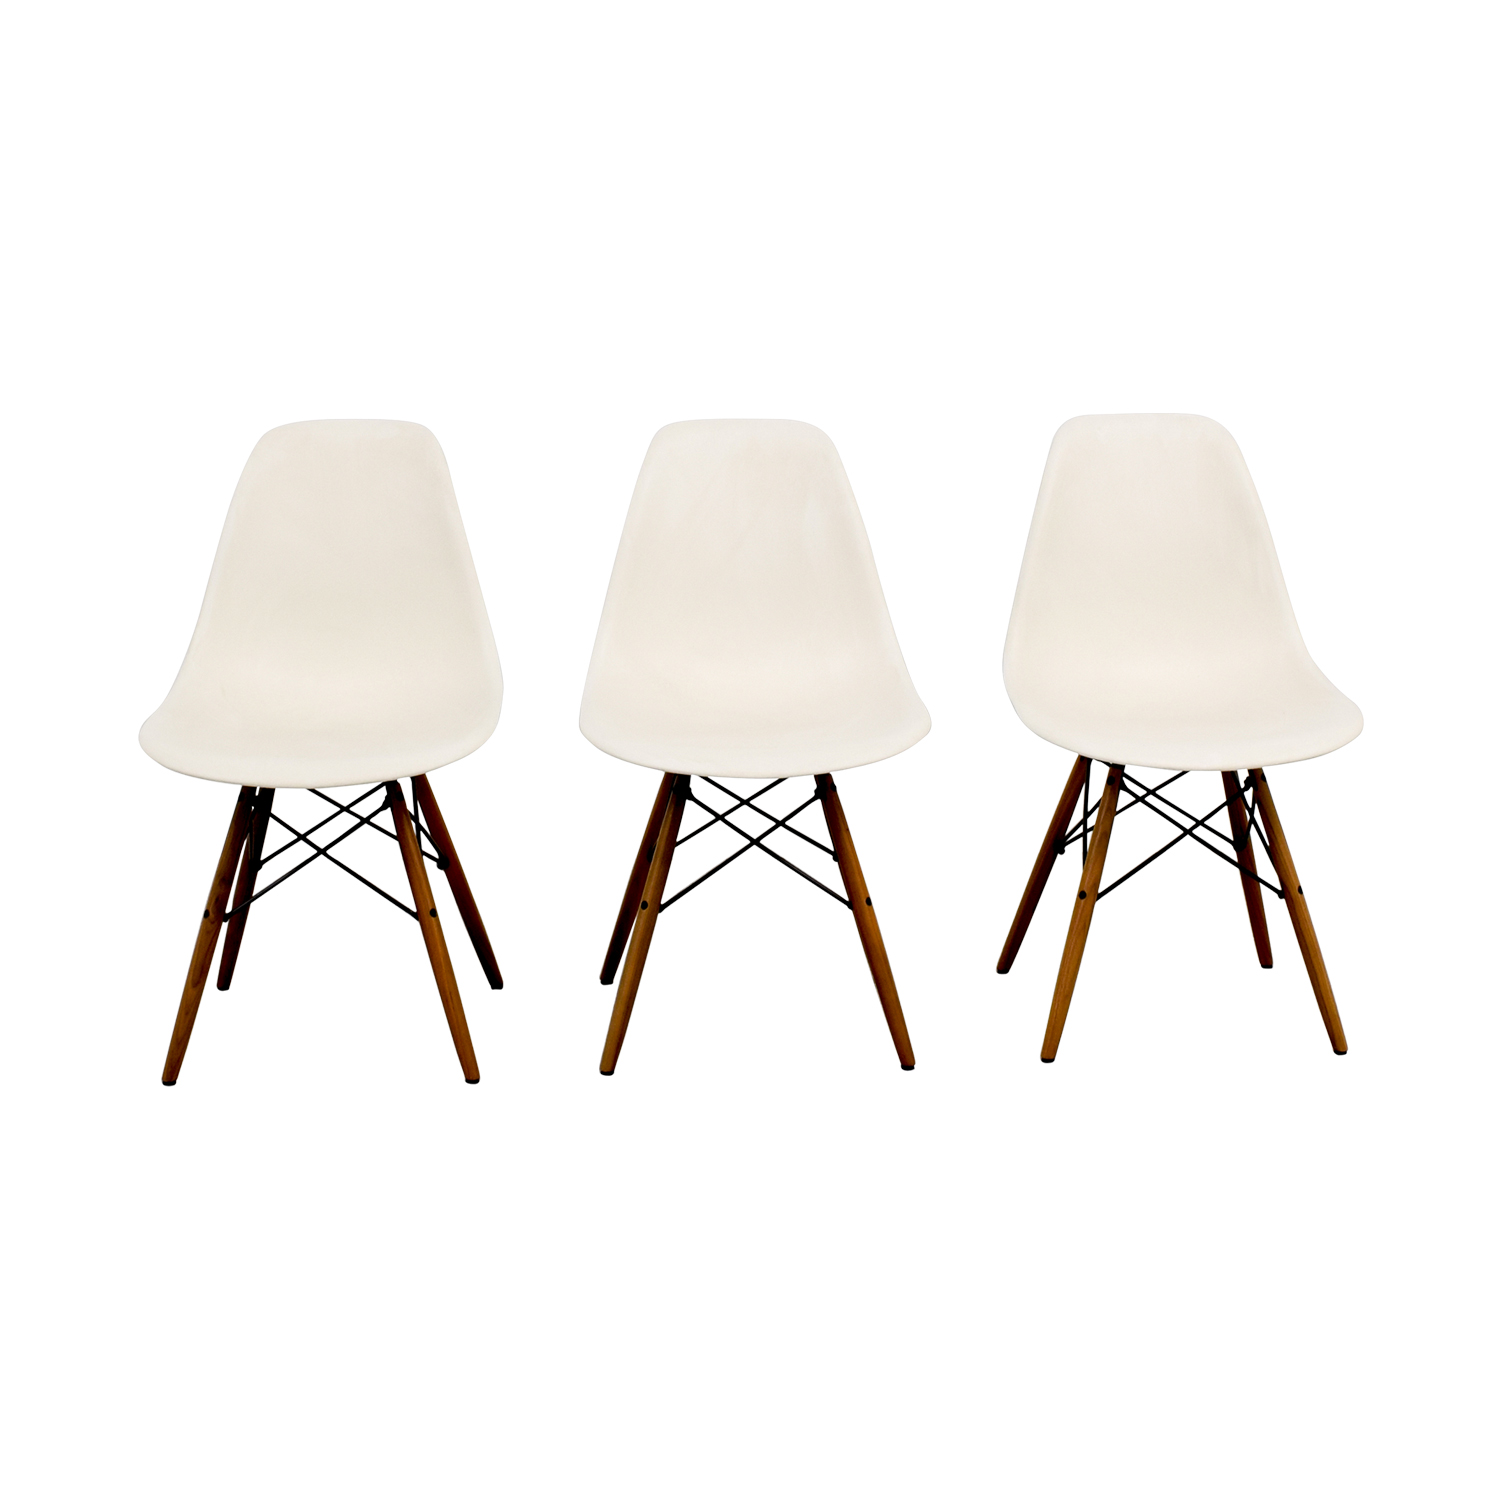 Eames Molded Plastic Side Chairs / Accent Chairs